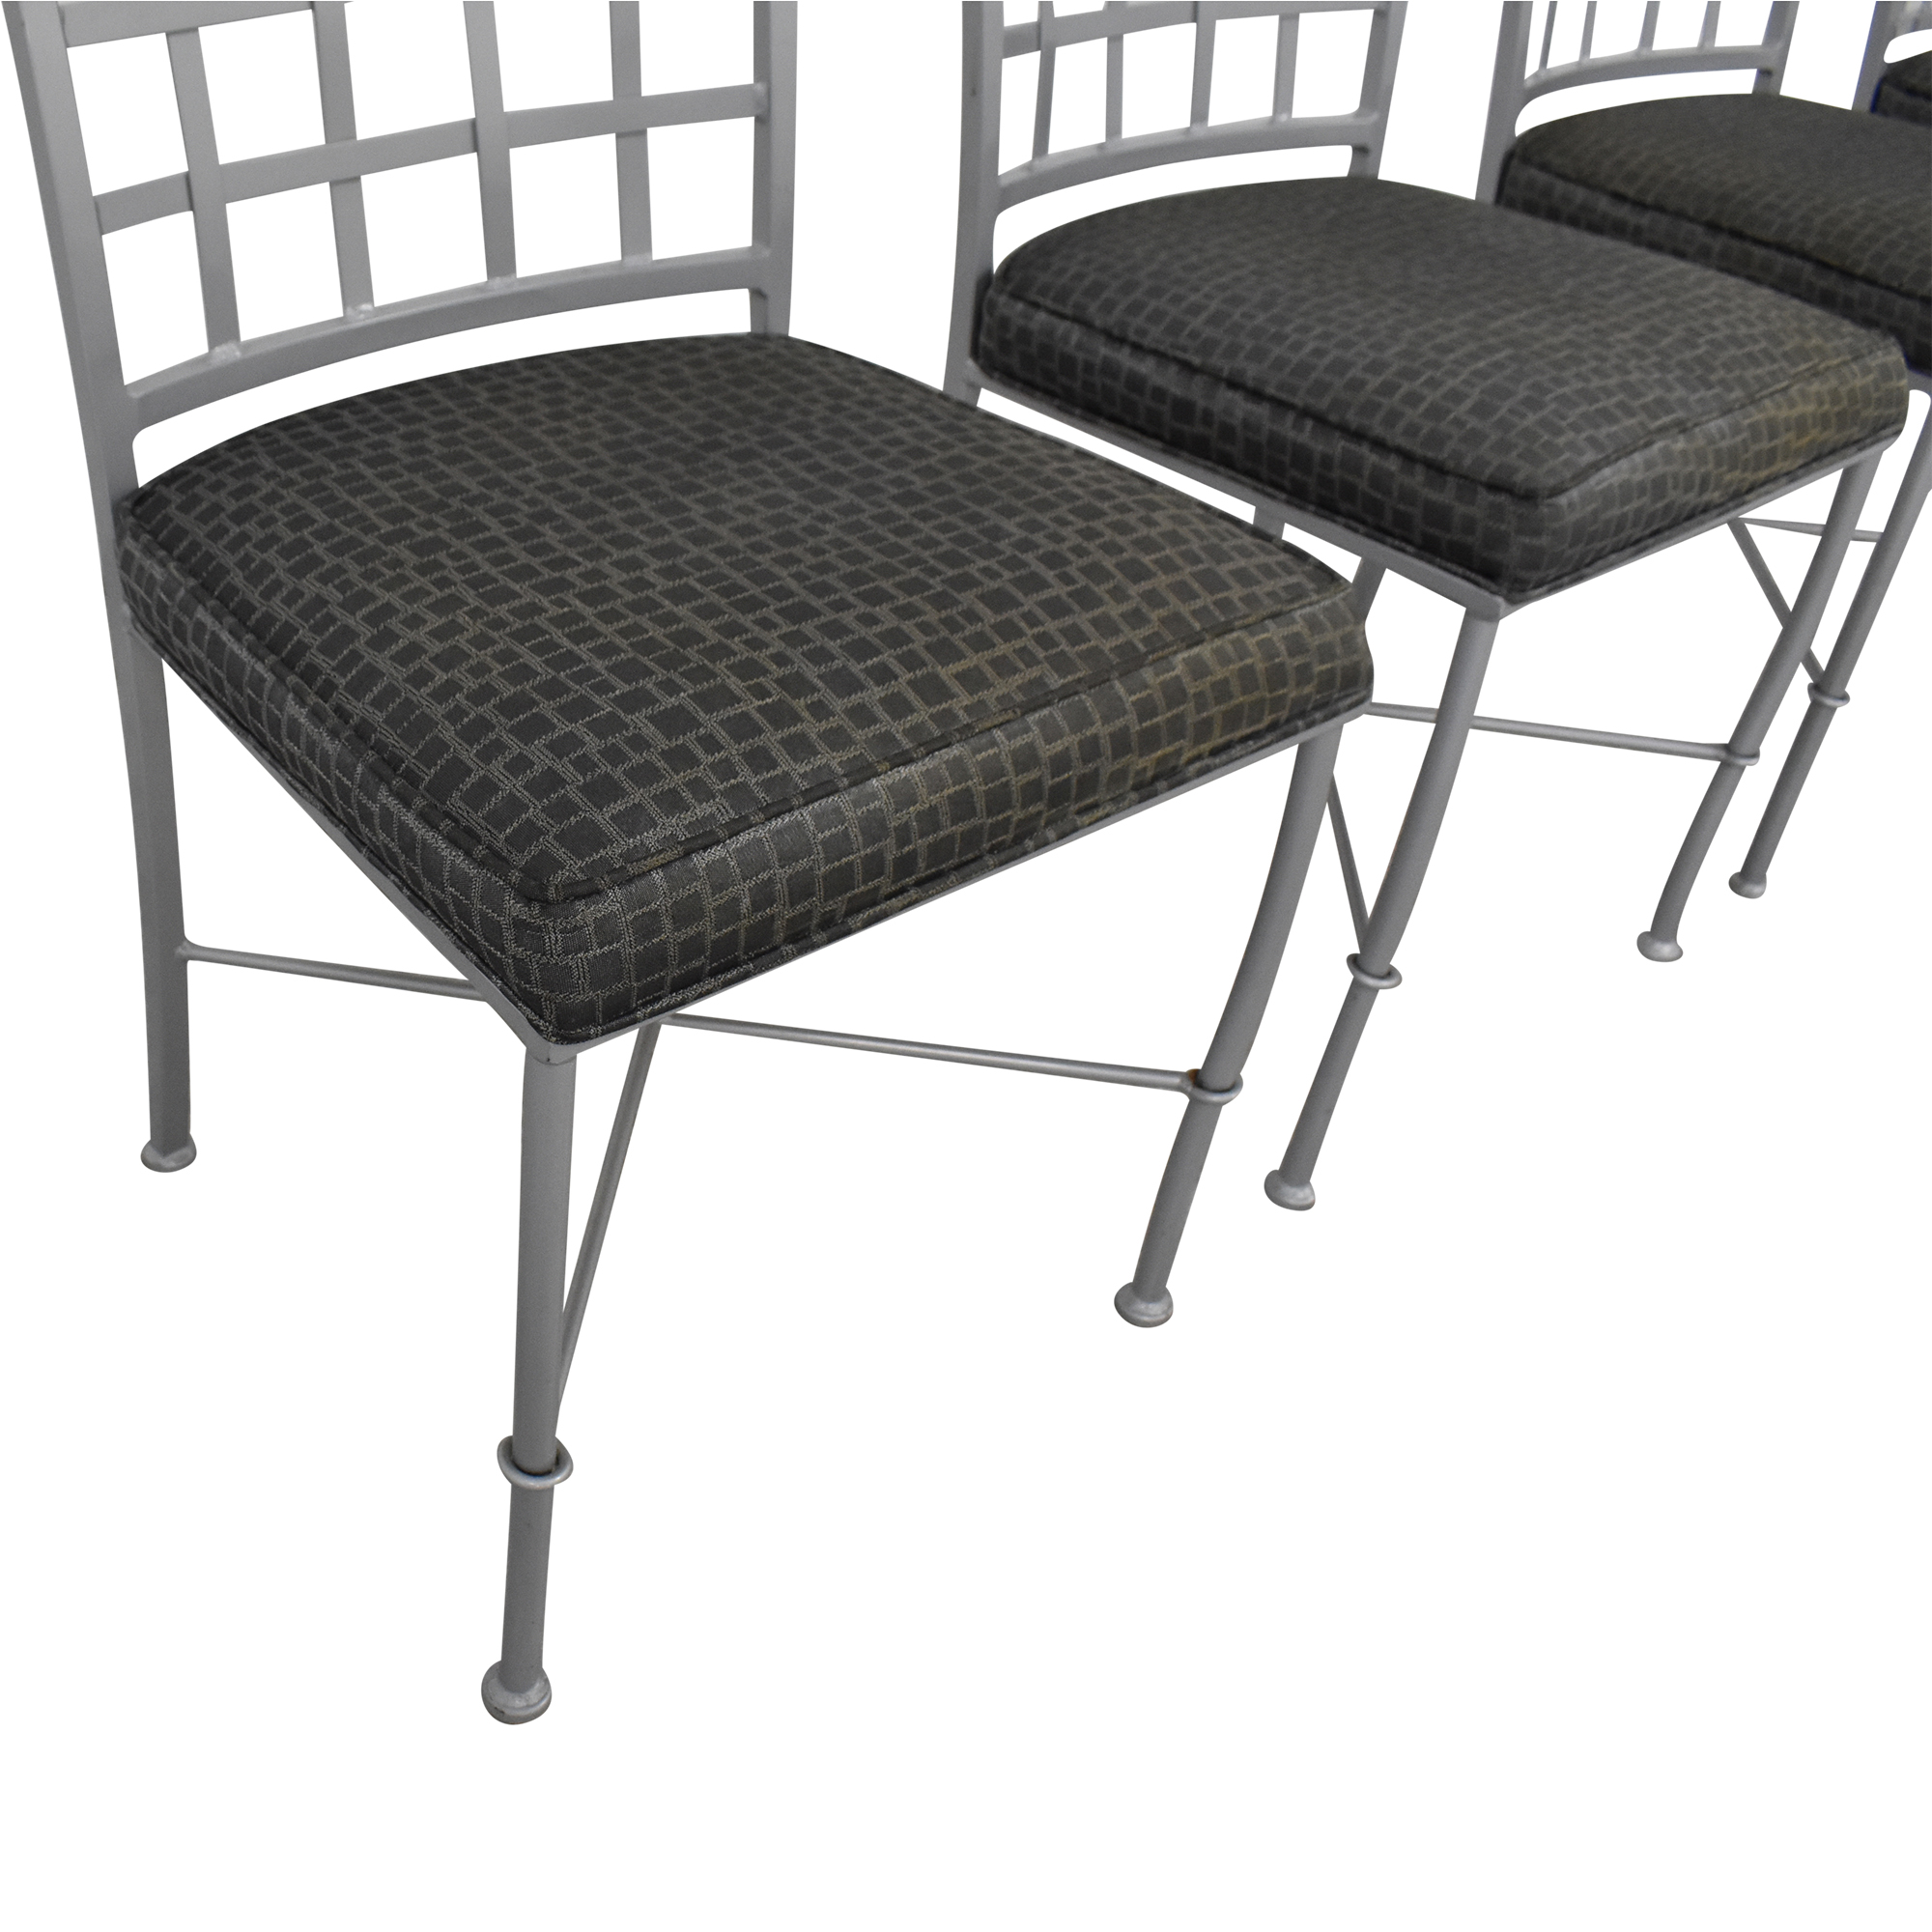 Johnston Casuals Johnston Casuals Lattice Back Dining Chairs Chairs